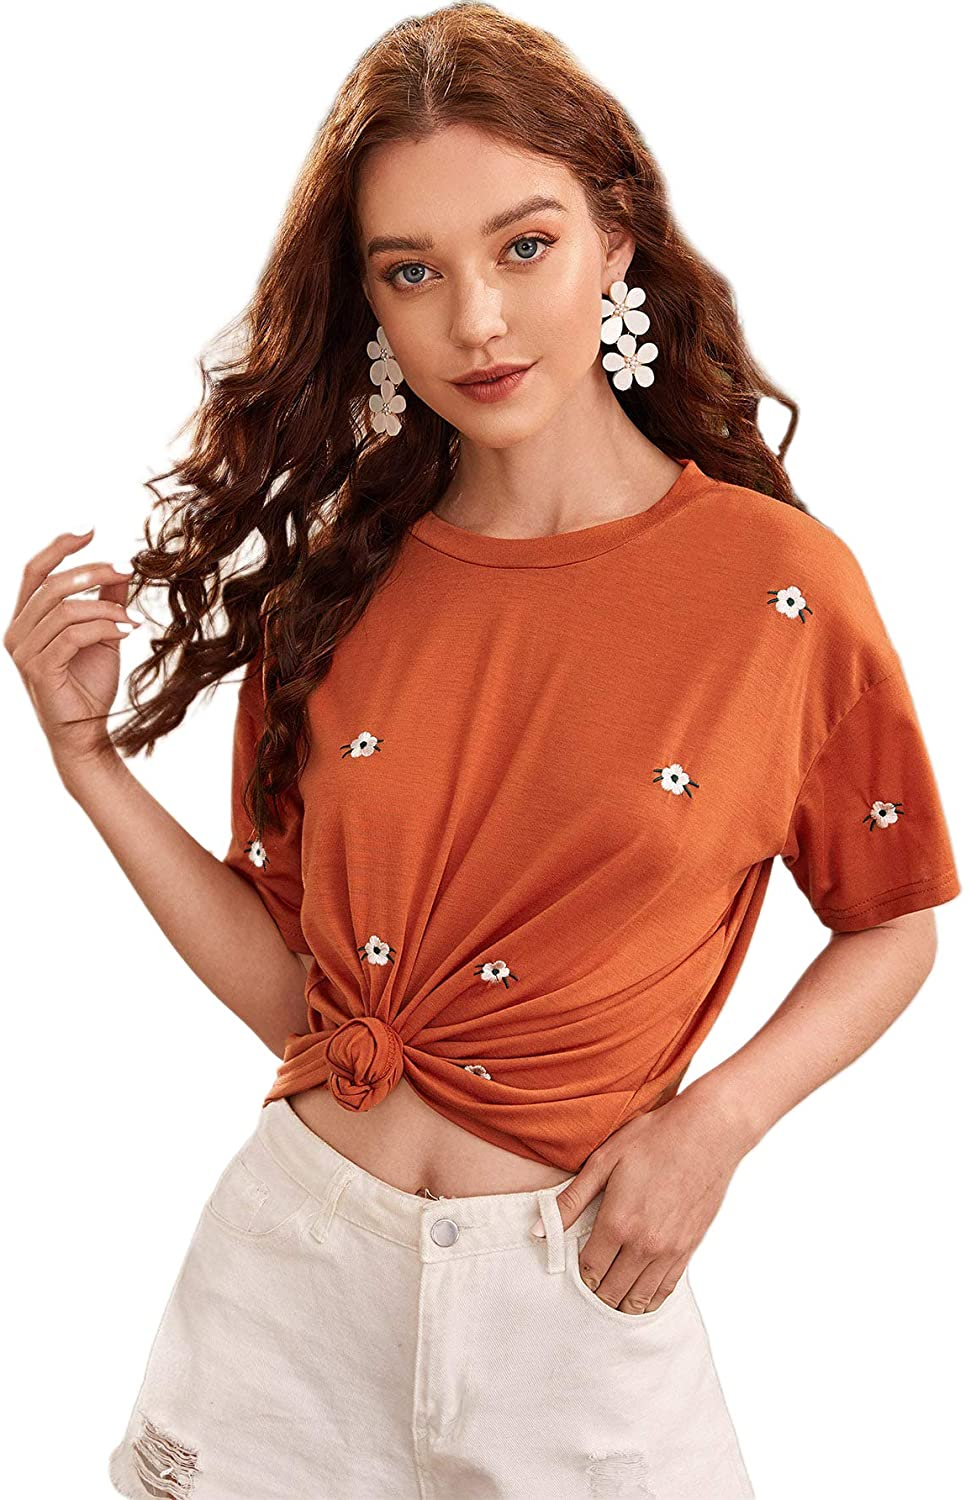 Romwe Women's Casual Embroidery Floral Short Sleeve Basic Summer Tee Tops T-Shirt